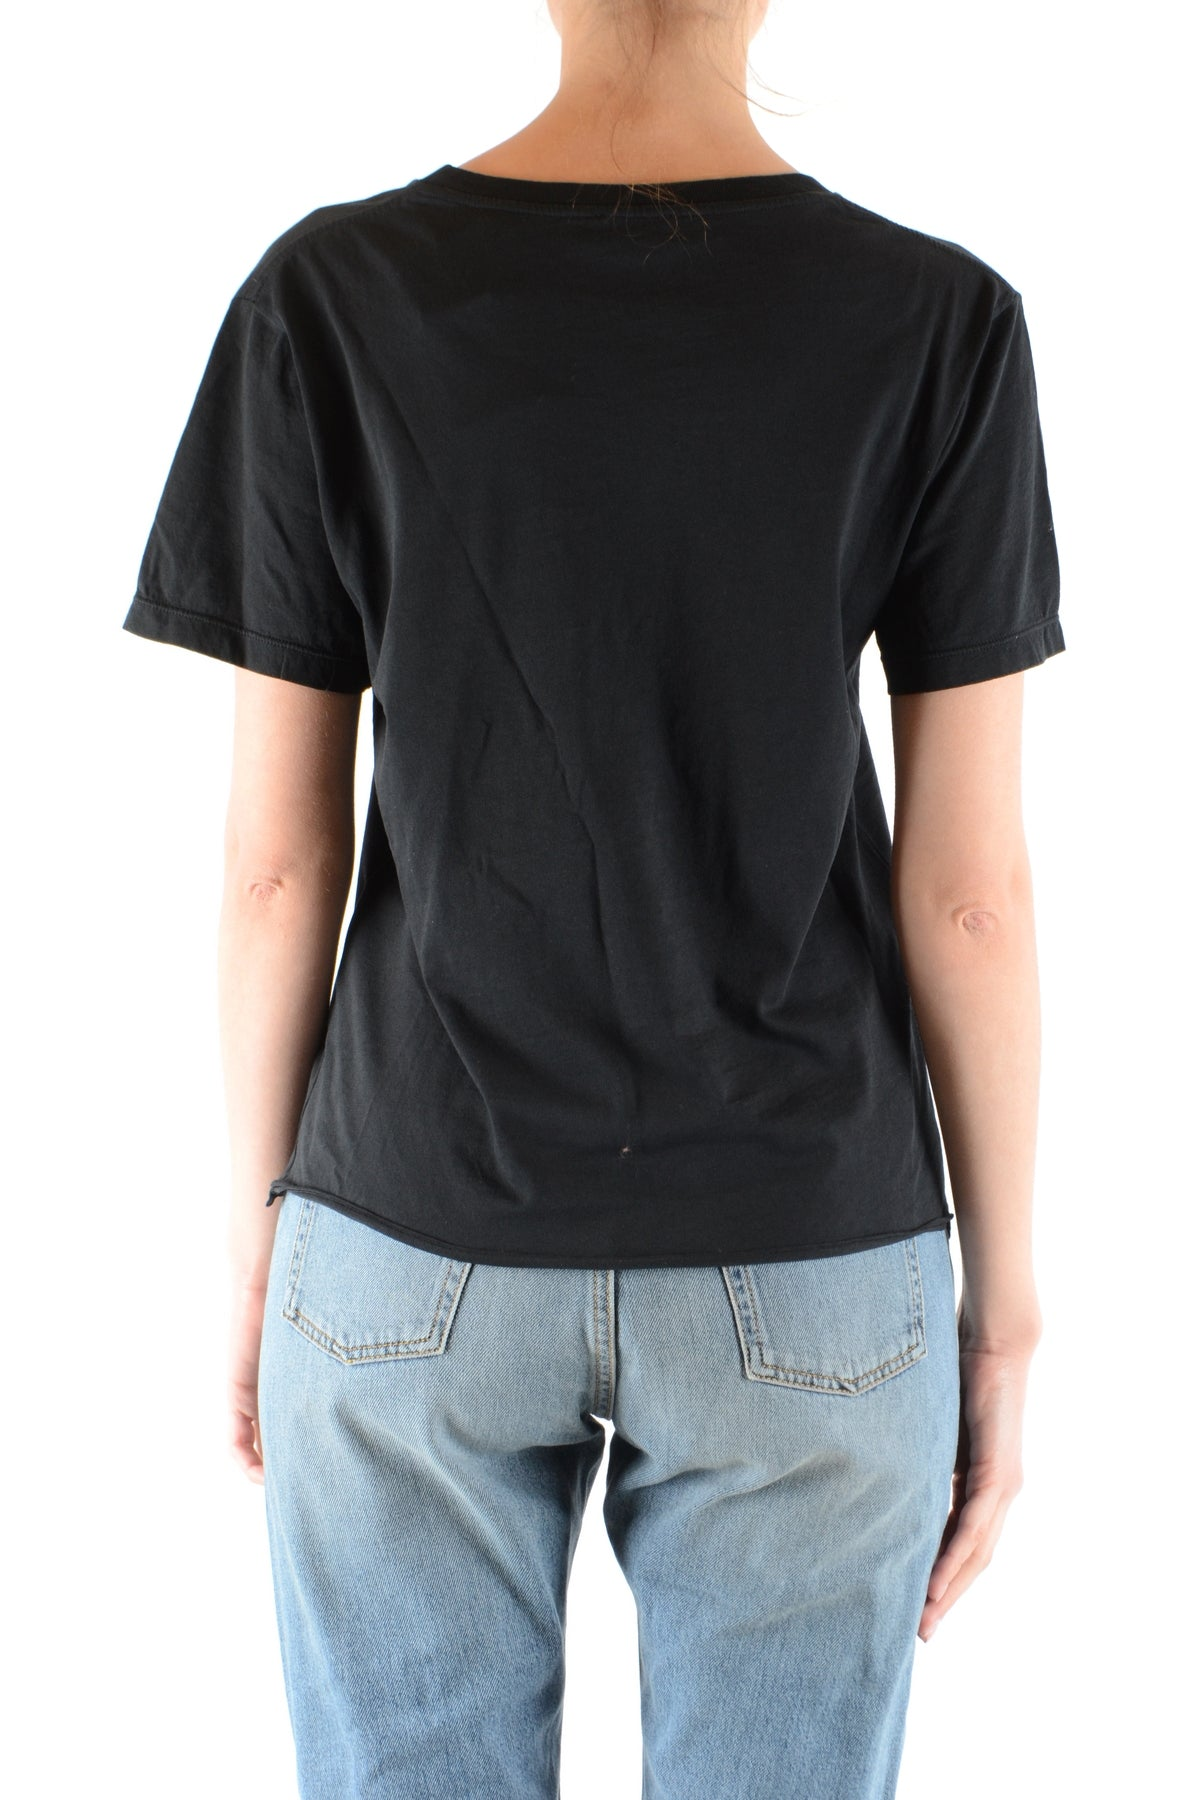 Tshirt Short Sleeves Saint Laurent-Tshirt Short Sleeves - WOMAN-Product Details Terms: New With LabelMain Color: BlackSeason: Spring / SummerMade In: ItalyManufacturer Part Number: 510973/ Yb2Ql1030Size: IntGender: WomanYear: 2018Clothing Type: T-Shirt-Keyomi-Sook